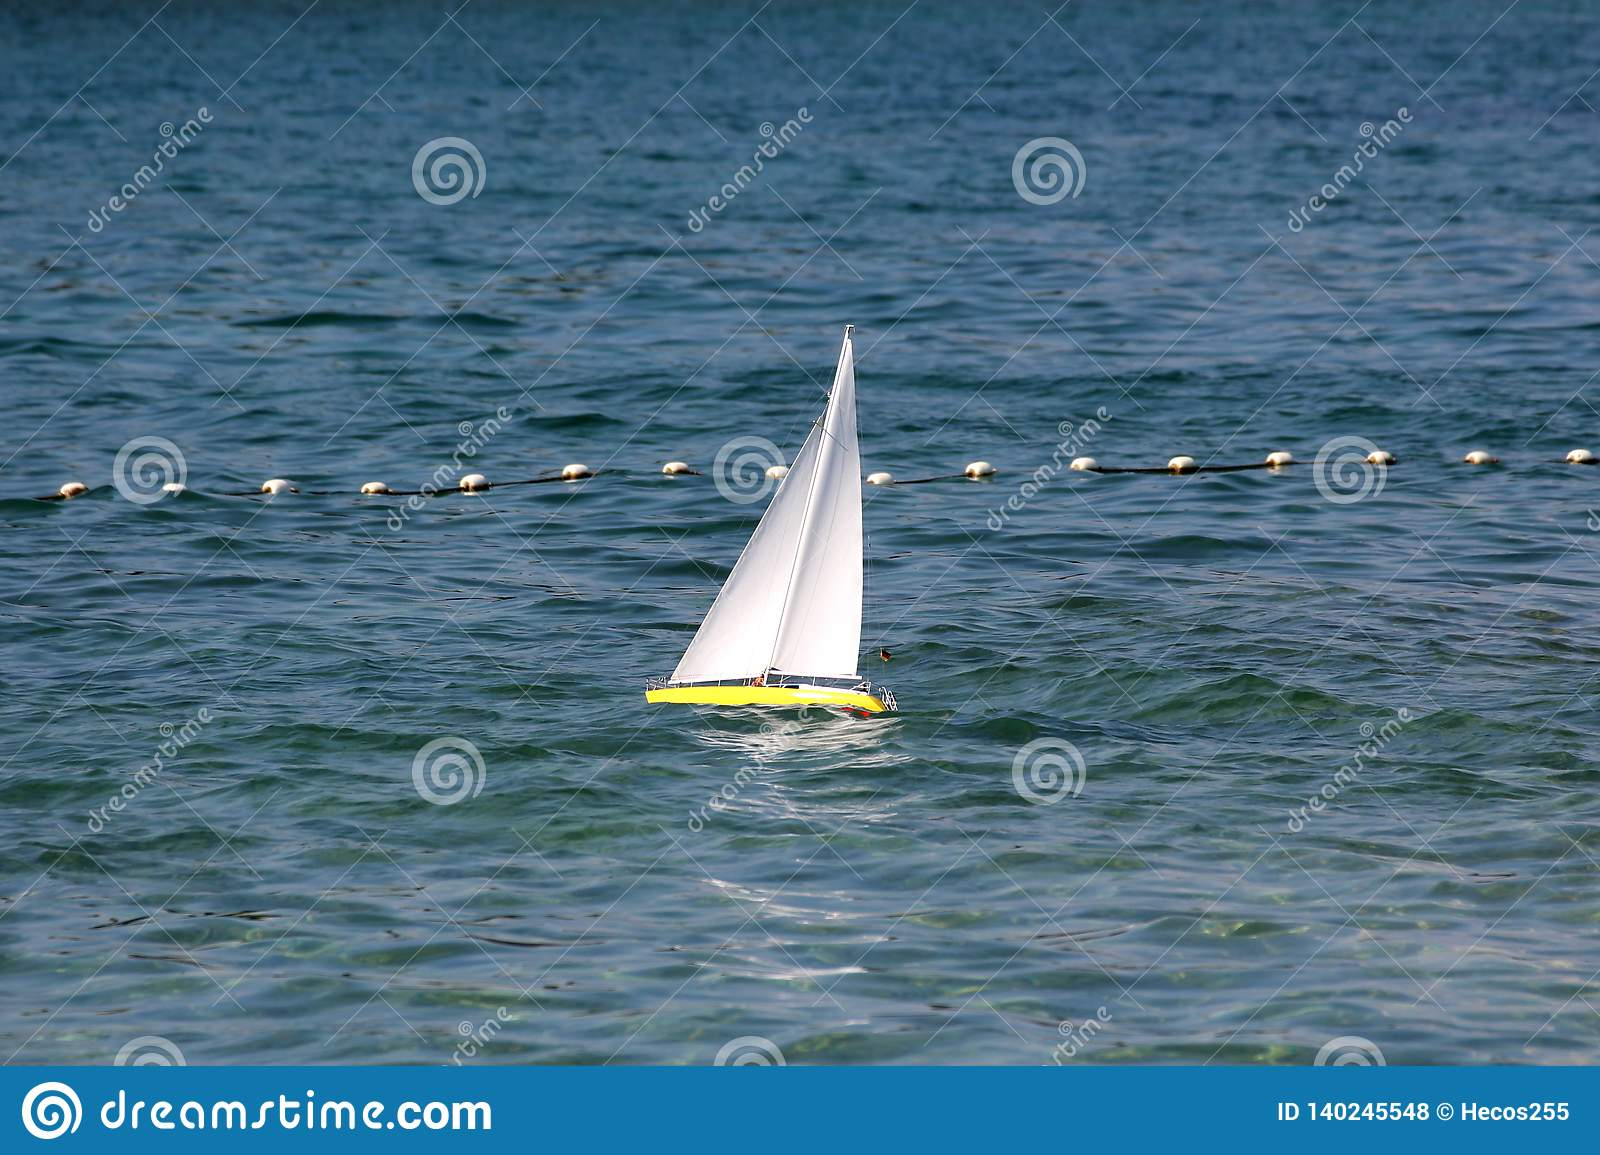 Remote controlled yellow sailing boat with clear white sails used as children toy in local bay on restless sea surrounded with